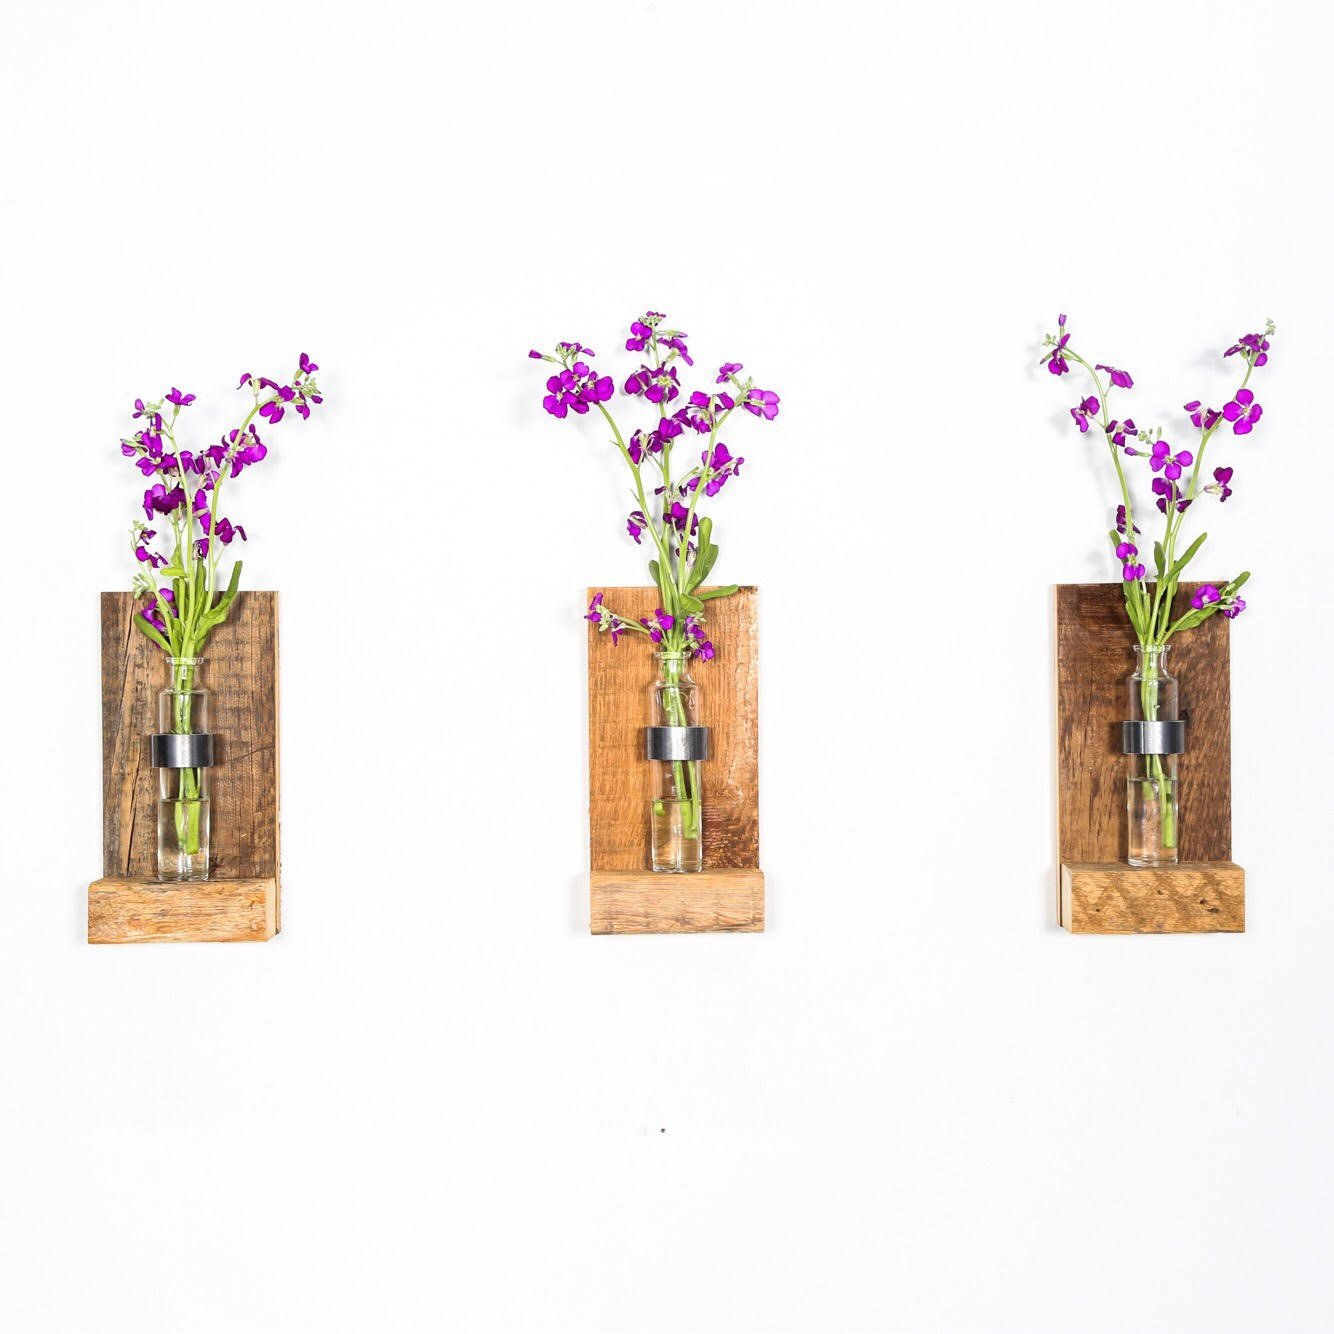 Wall mounted flower vase ; Flower Sconce; Hanging Planter; Rustic Wall Vase. Wall Mounted Vase. Wall Planter, Glass wall terrarium, Air Plant Wood Vase Sconce. Flower Vase.